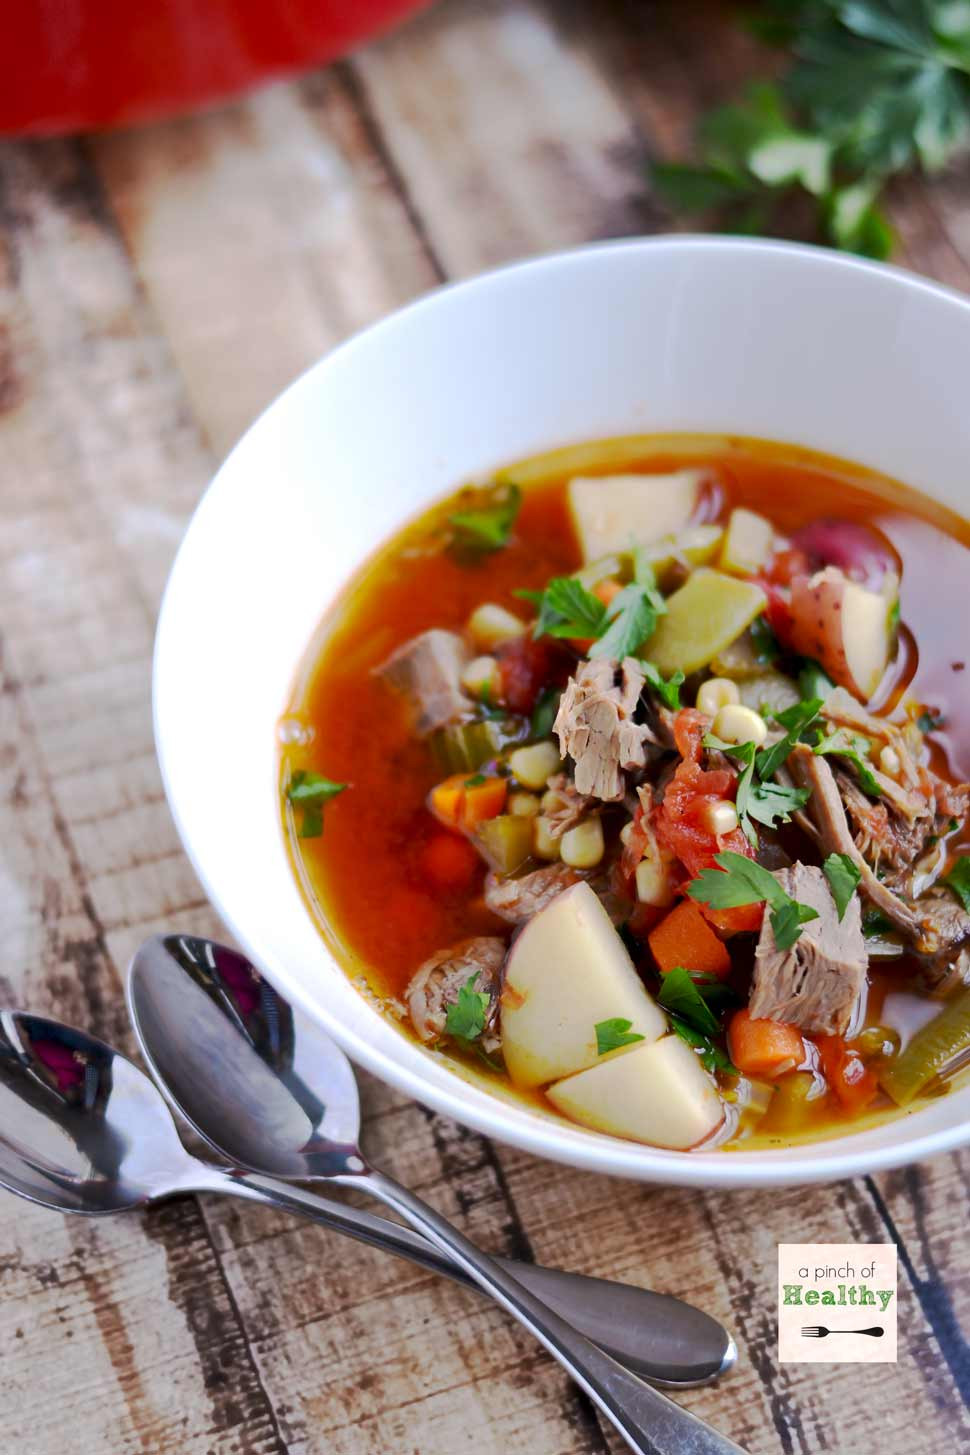 Healthy Vegetable Beef Soup  Ve able Beef Soup A Pinch of Healthy